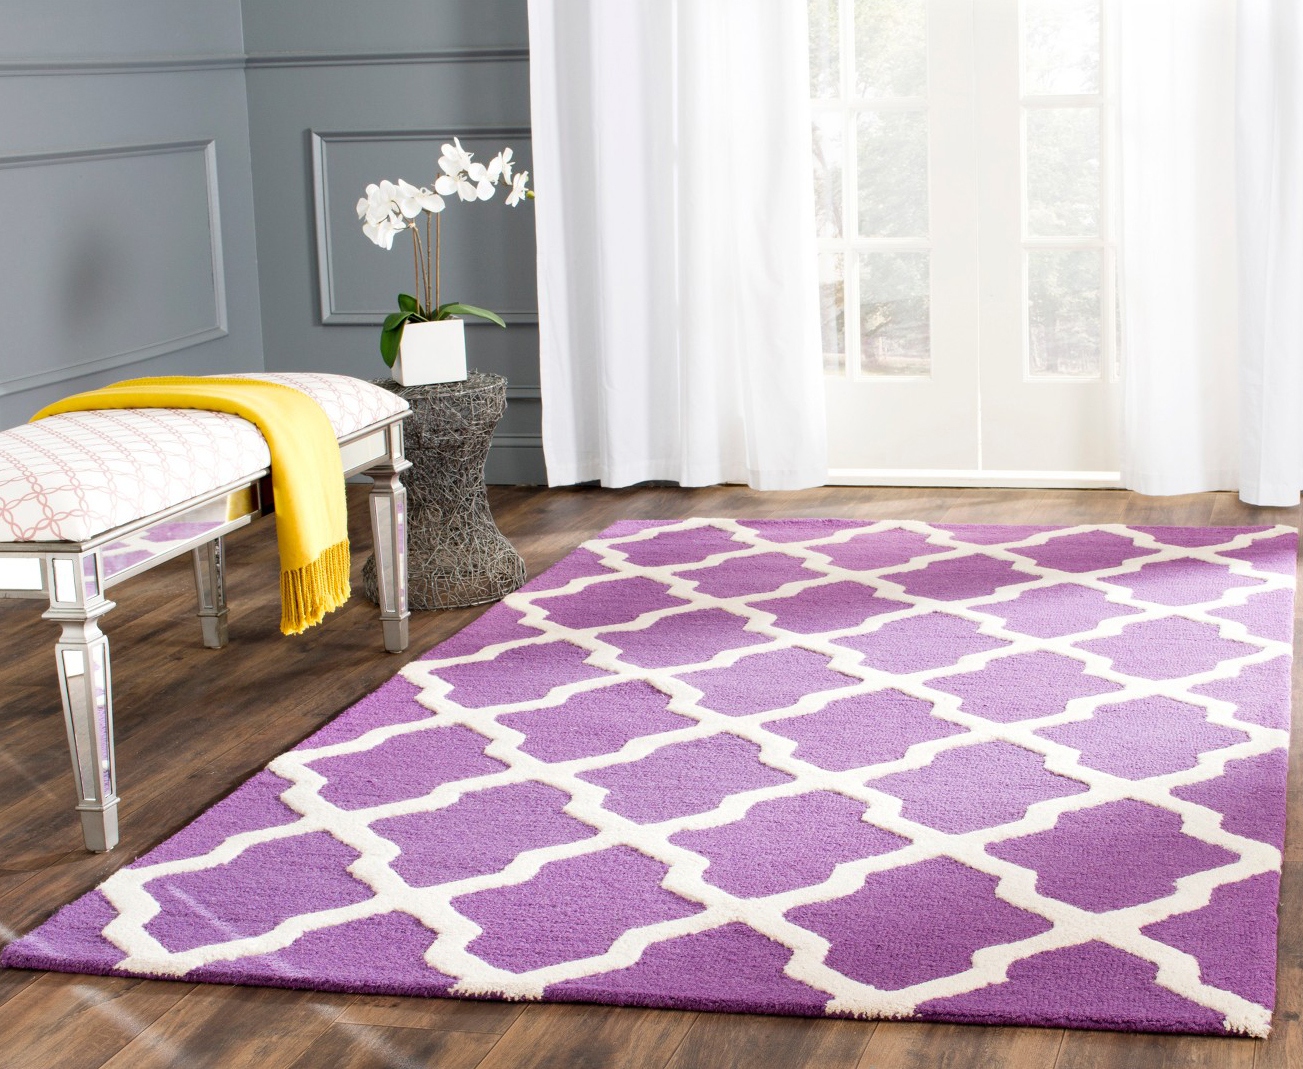 Panton color violet rug